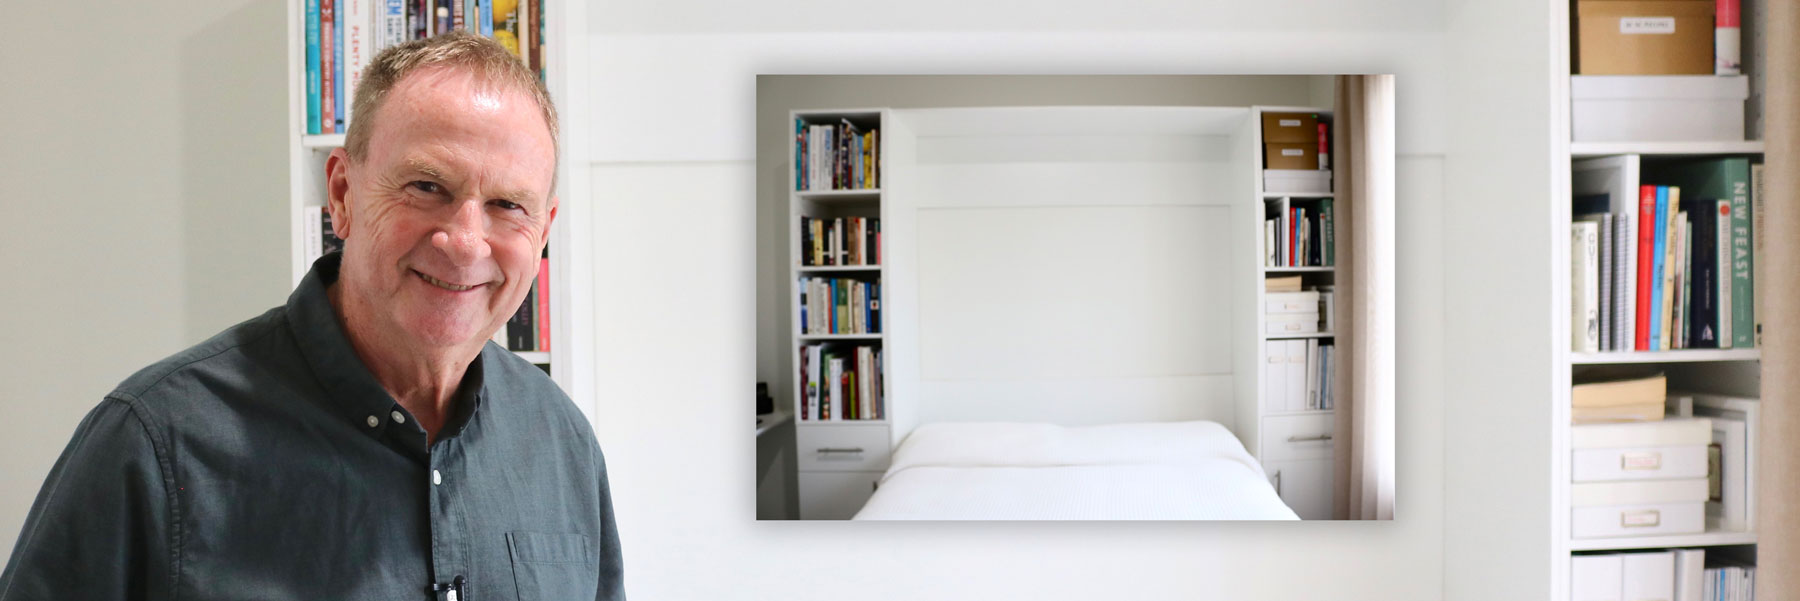 leigh-and-wall-bed